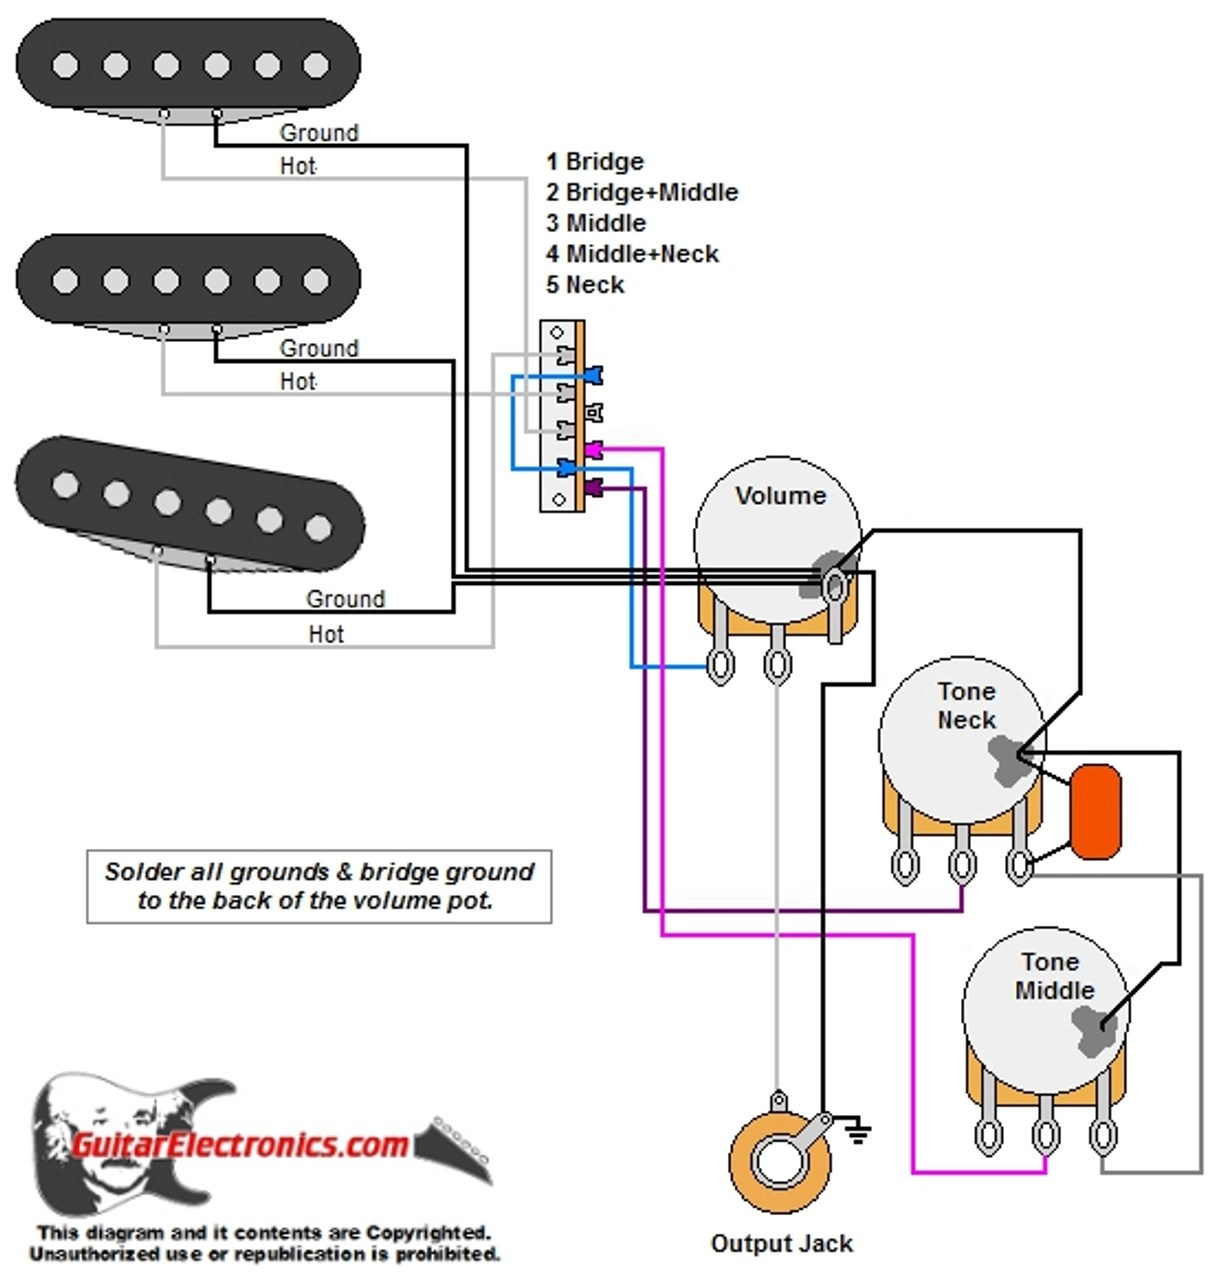 medium resolution of strat style guitar wiring diagram stratocaster wiring 3 way wdusss5l1201 80483 1481740458 jpg c